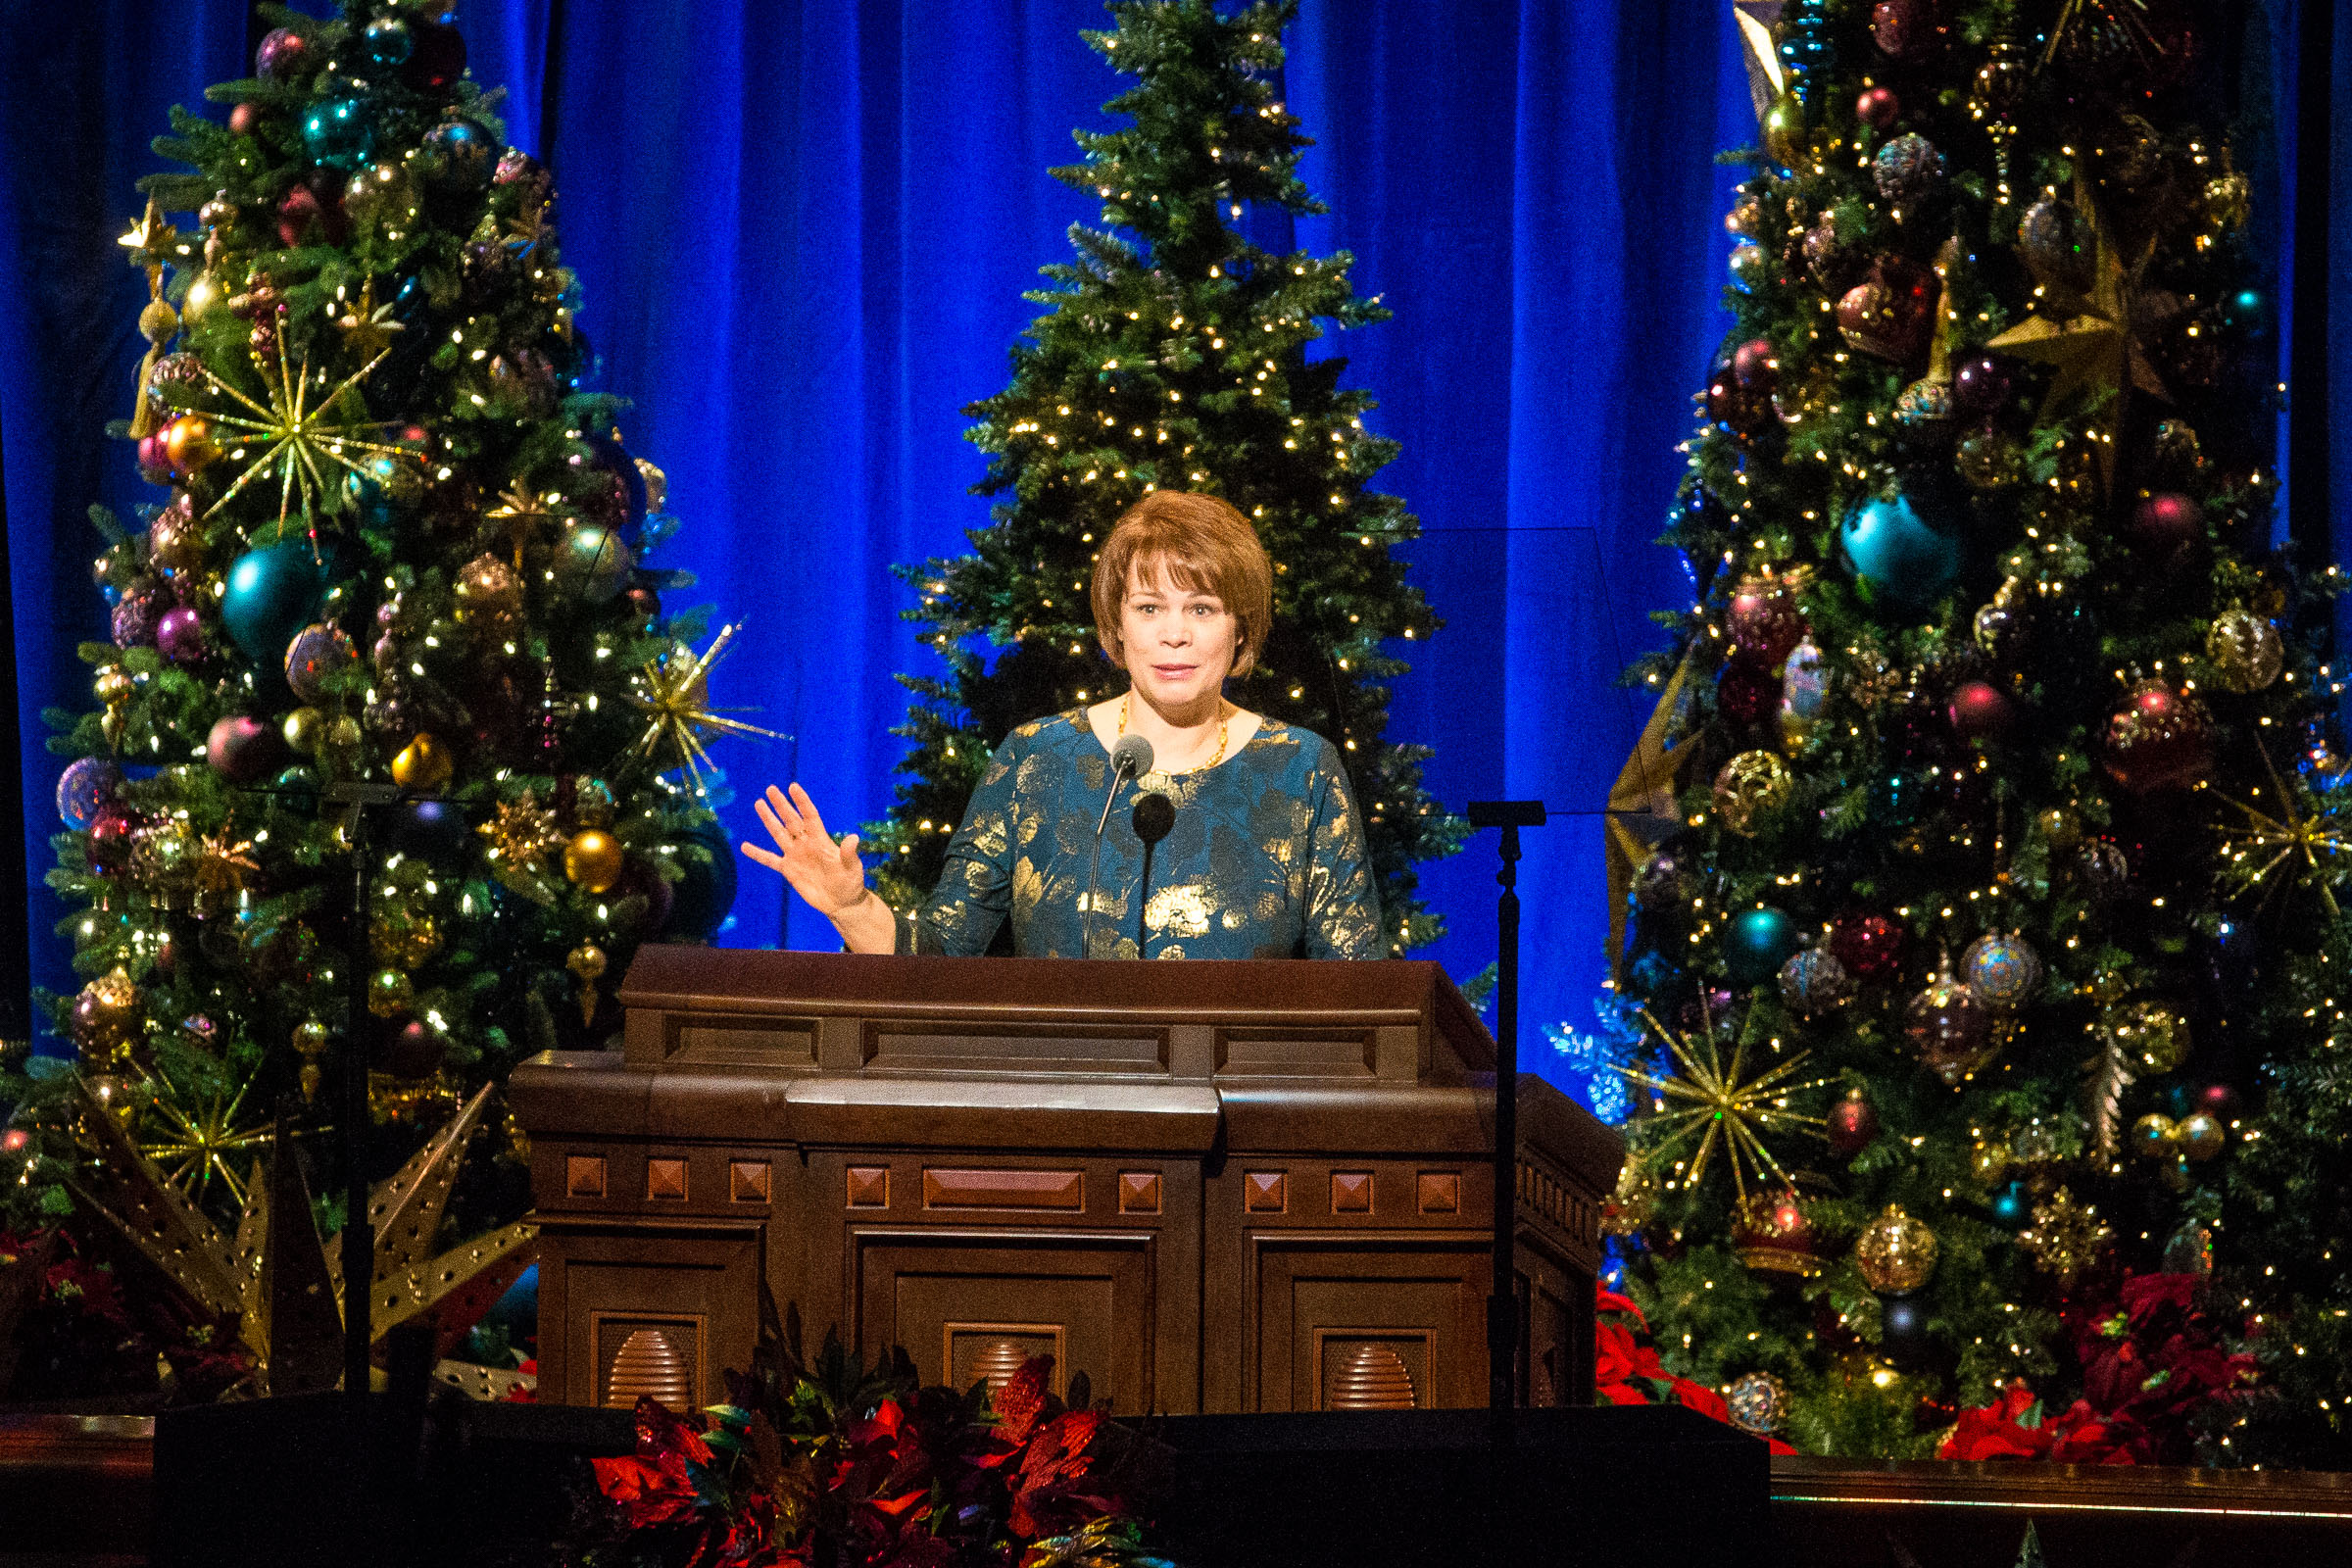 Sister Sharon Eubank, first counselor in Relief Society general presidency, speaks at the First Presidency's Christmas Devotional in the Conference Center in Salt Lake City on Sunday, Dec. 2, 2018.